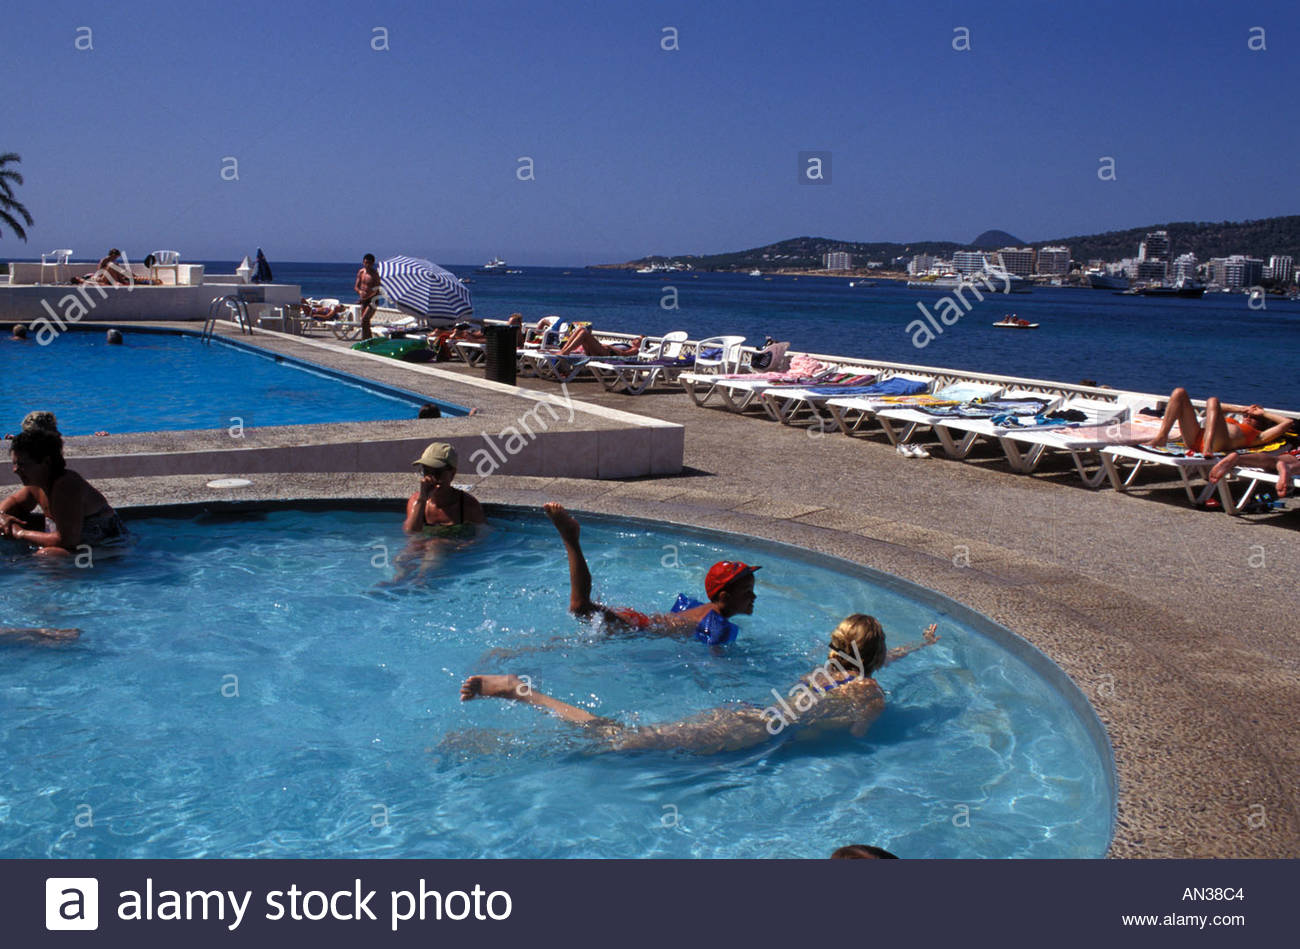 Hotel pool with people  People swimming in the hotel pool San Antonio Ibiza Spain Stock ...